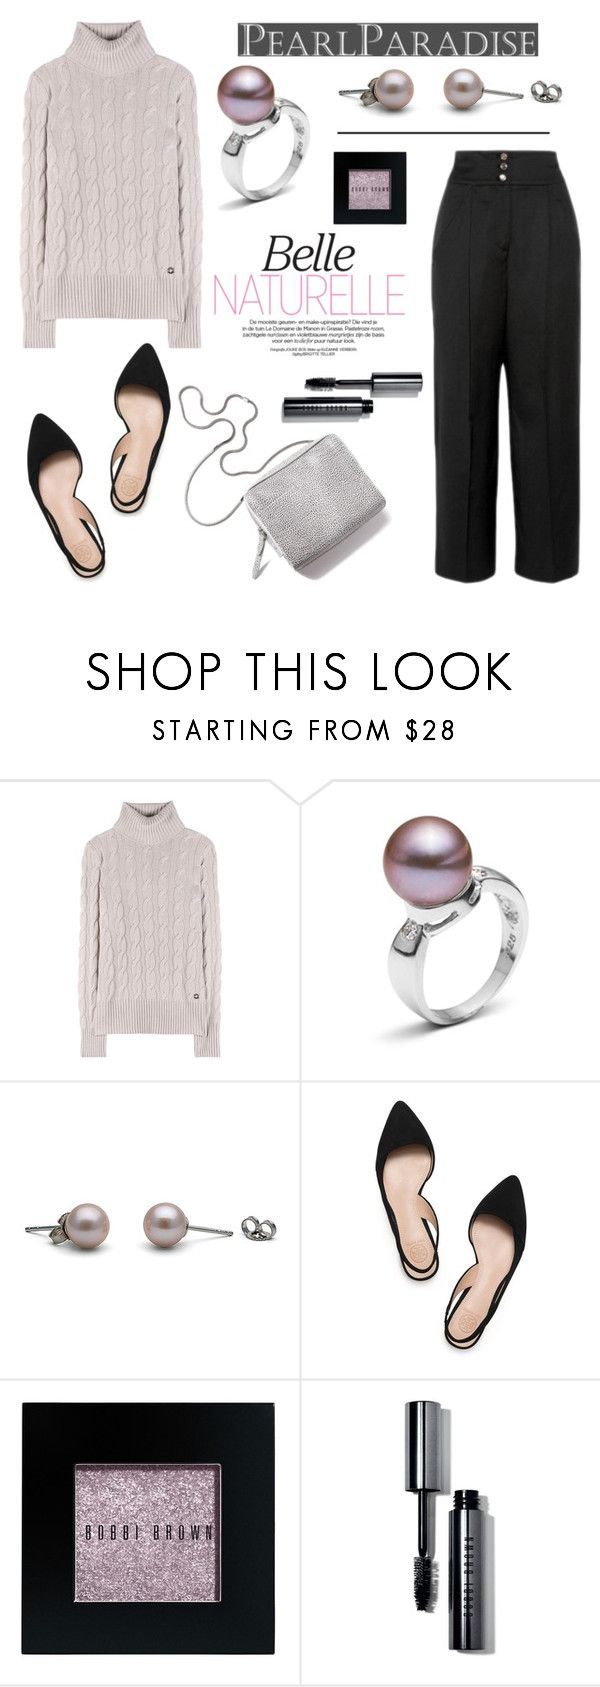 """Beautiful by Pearl Paradise"" by pearlparadise ❤ liked on Polyvore featuring Loro Piana, Tory Burch, 3.1 Phillip Lim, Bobbi Brown Cosmetics, women's clothing, women's fashion, women, female, woman and misses"